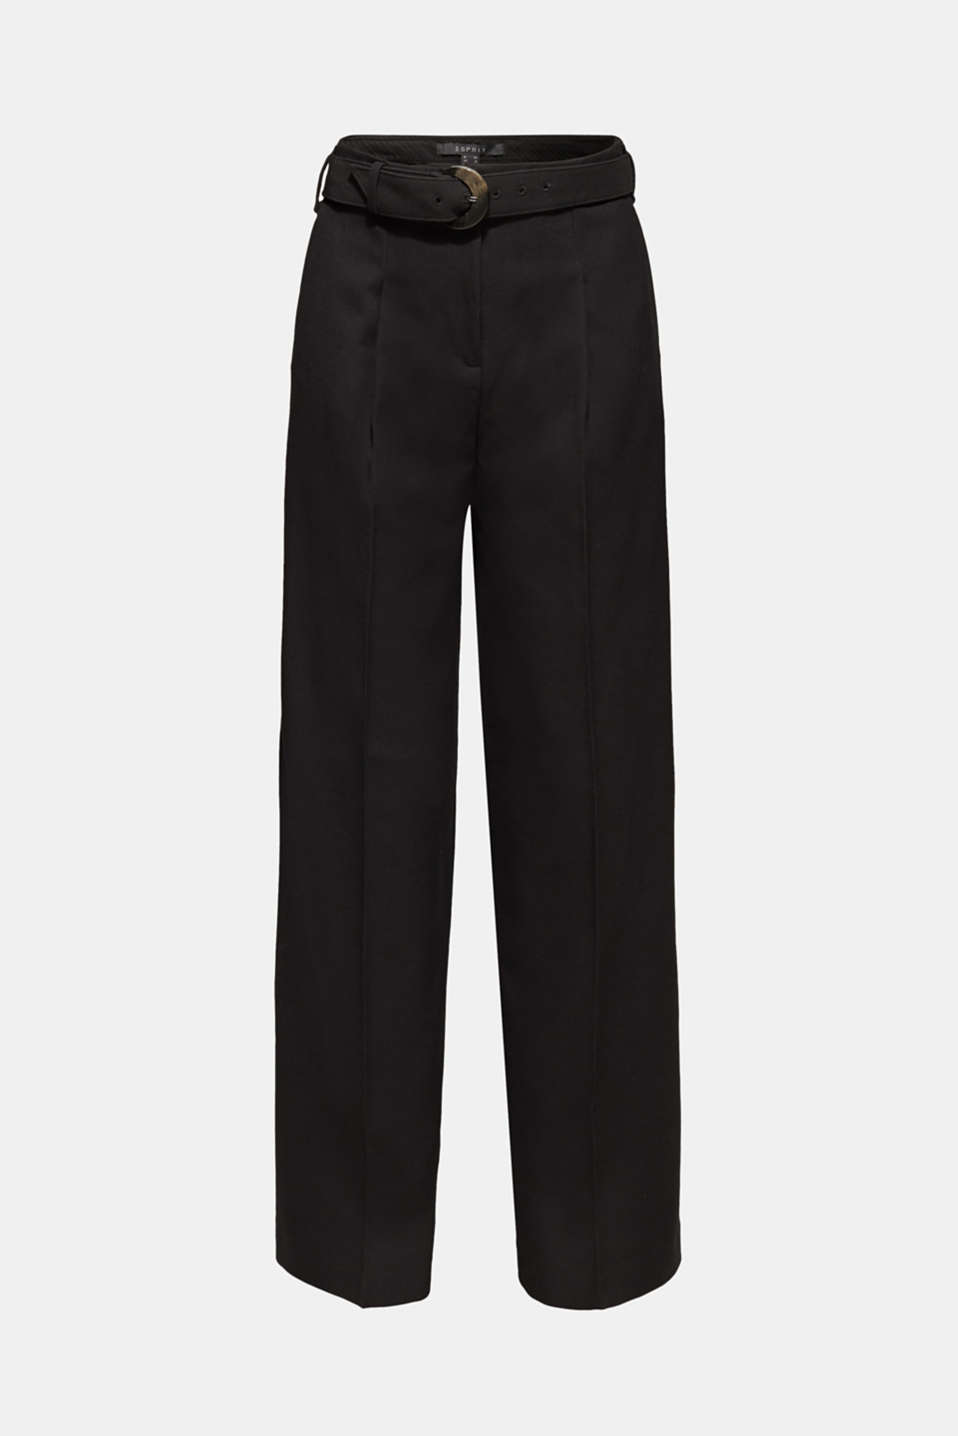 Wide high-rise trousers with a belt, BLACK, detail image number 8